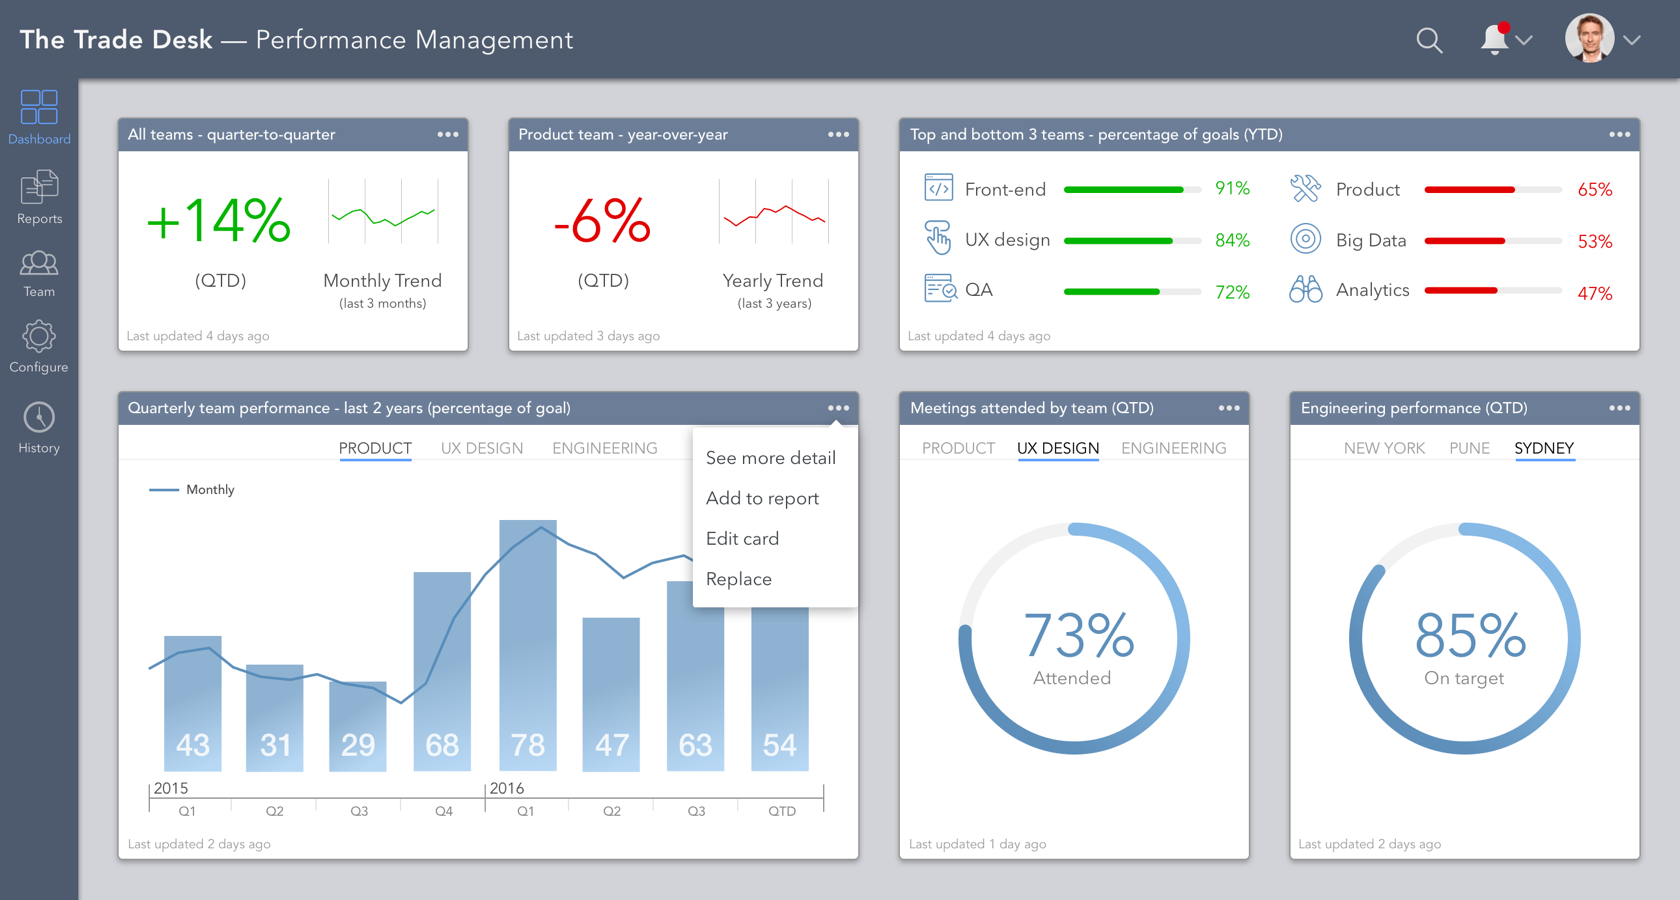 Contextual elements in a dashboard design